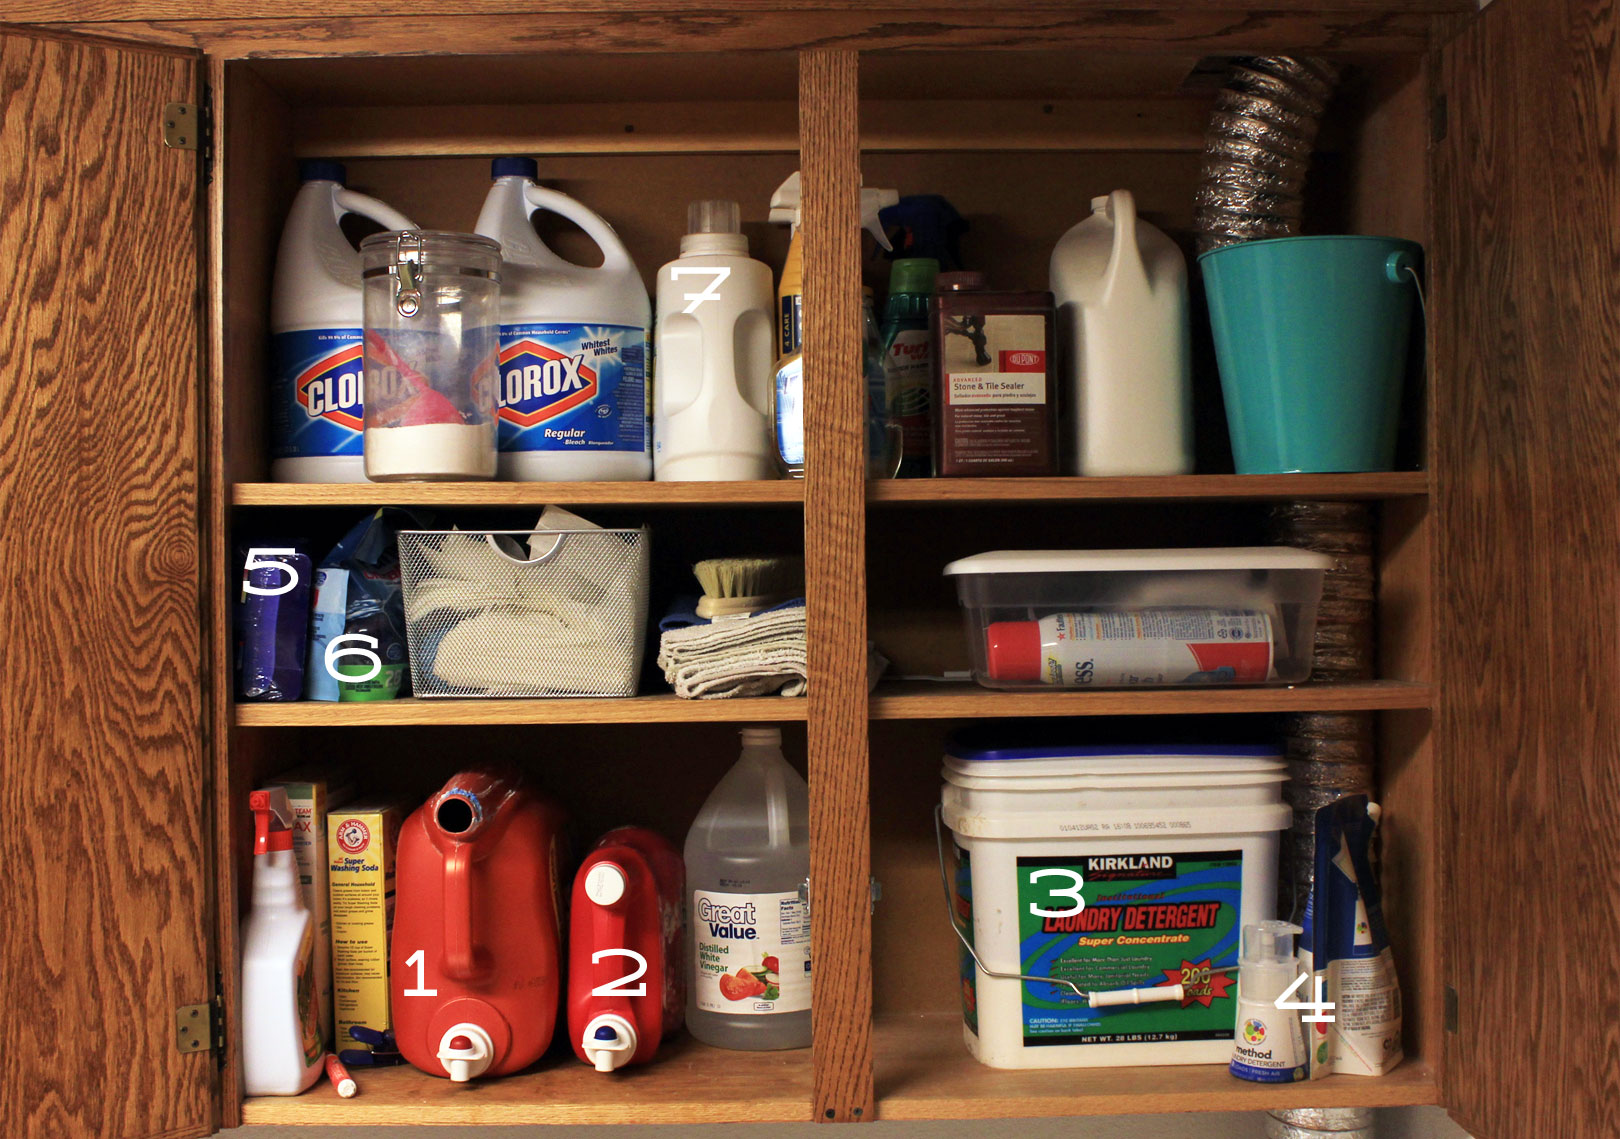 Laundry Organization Cleaning Cabinet Laundry Detergents